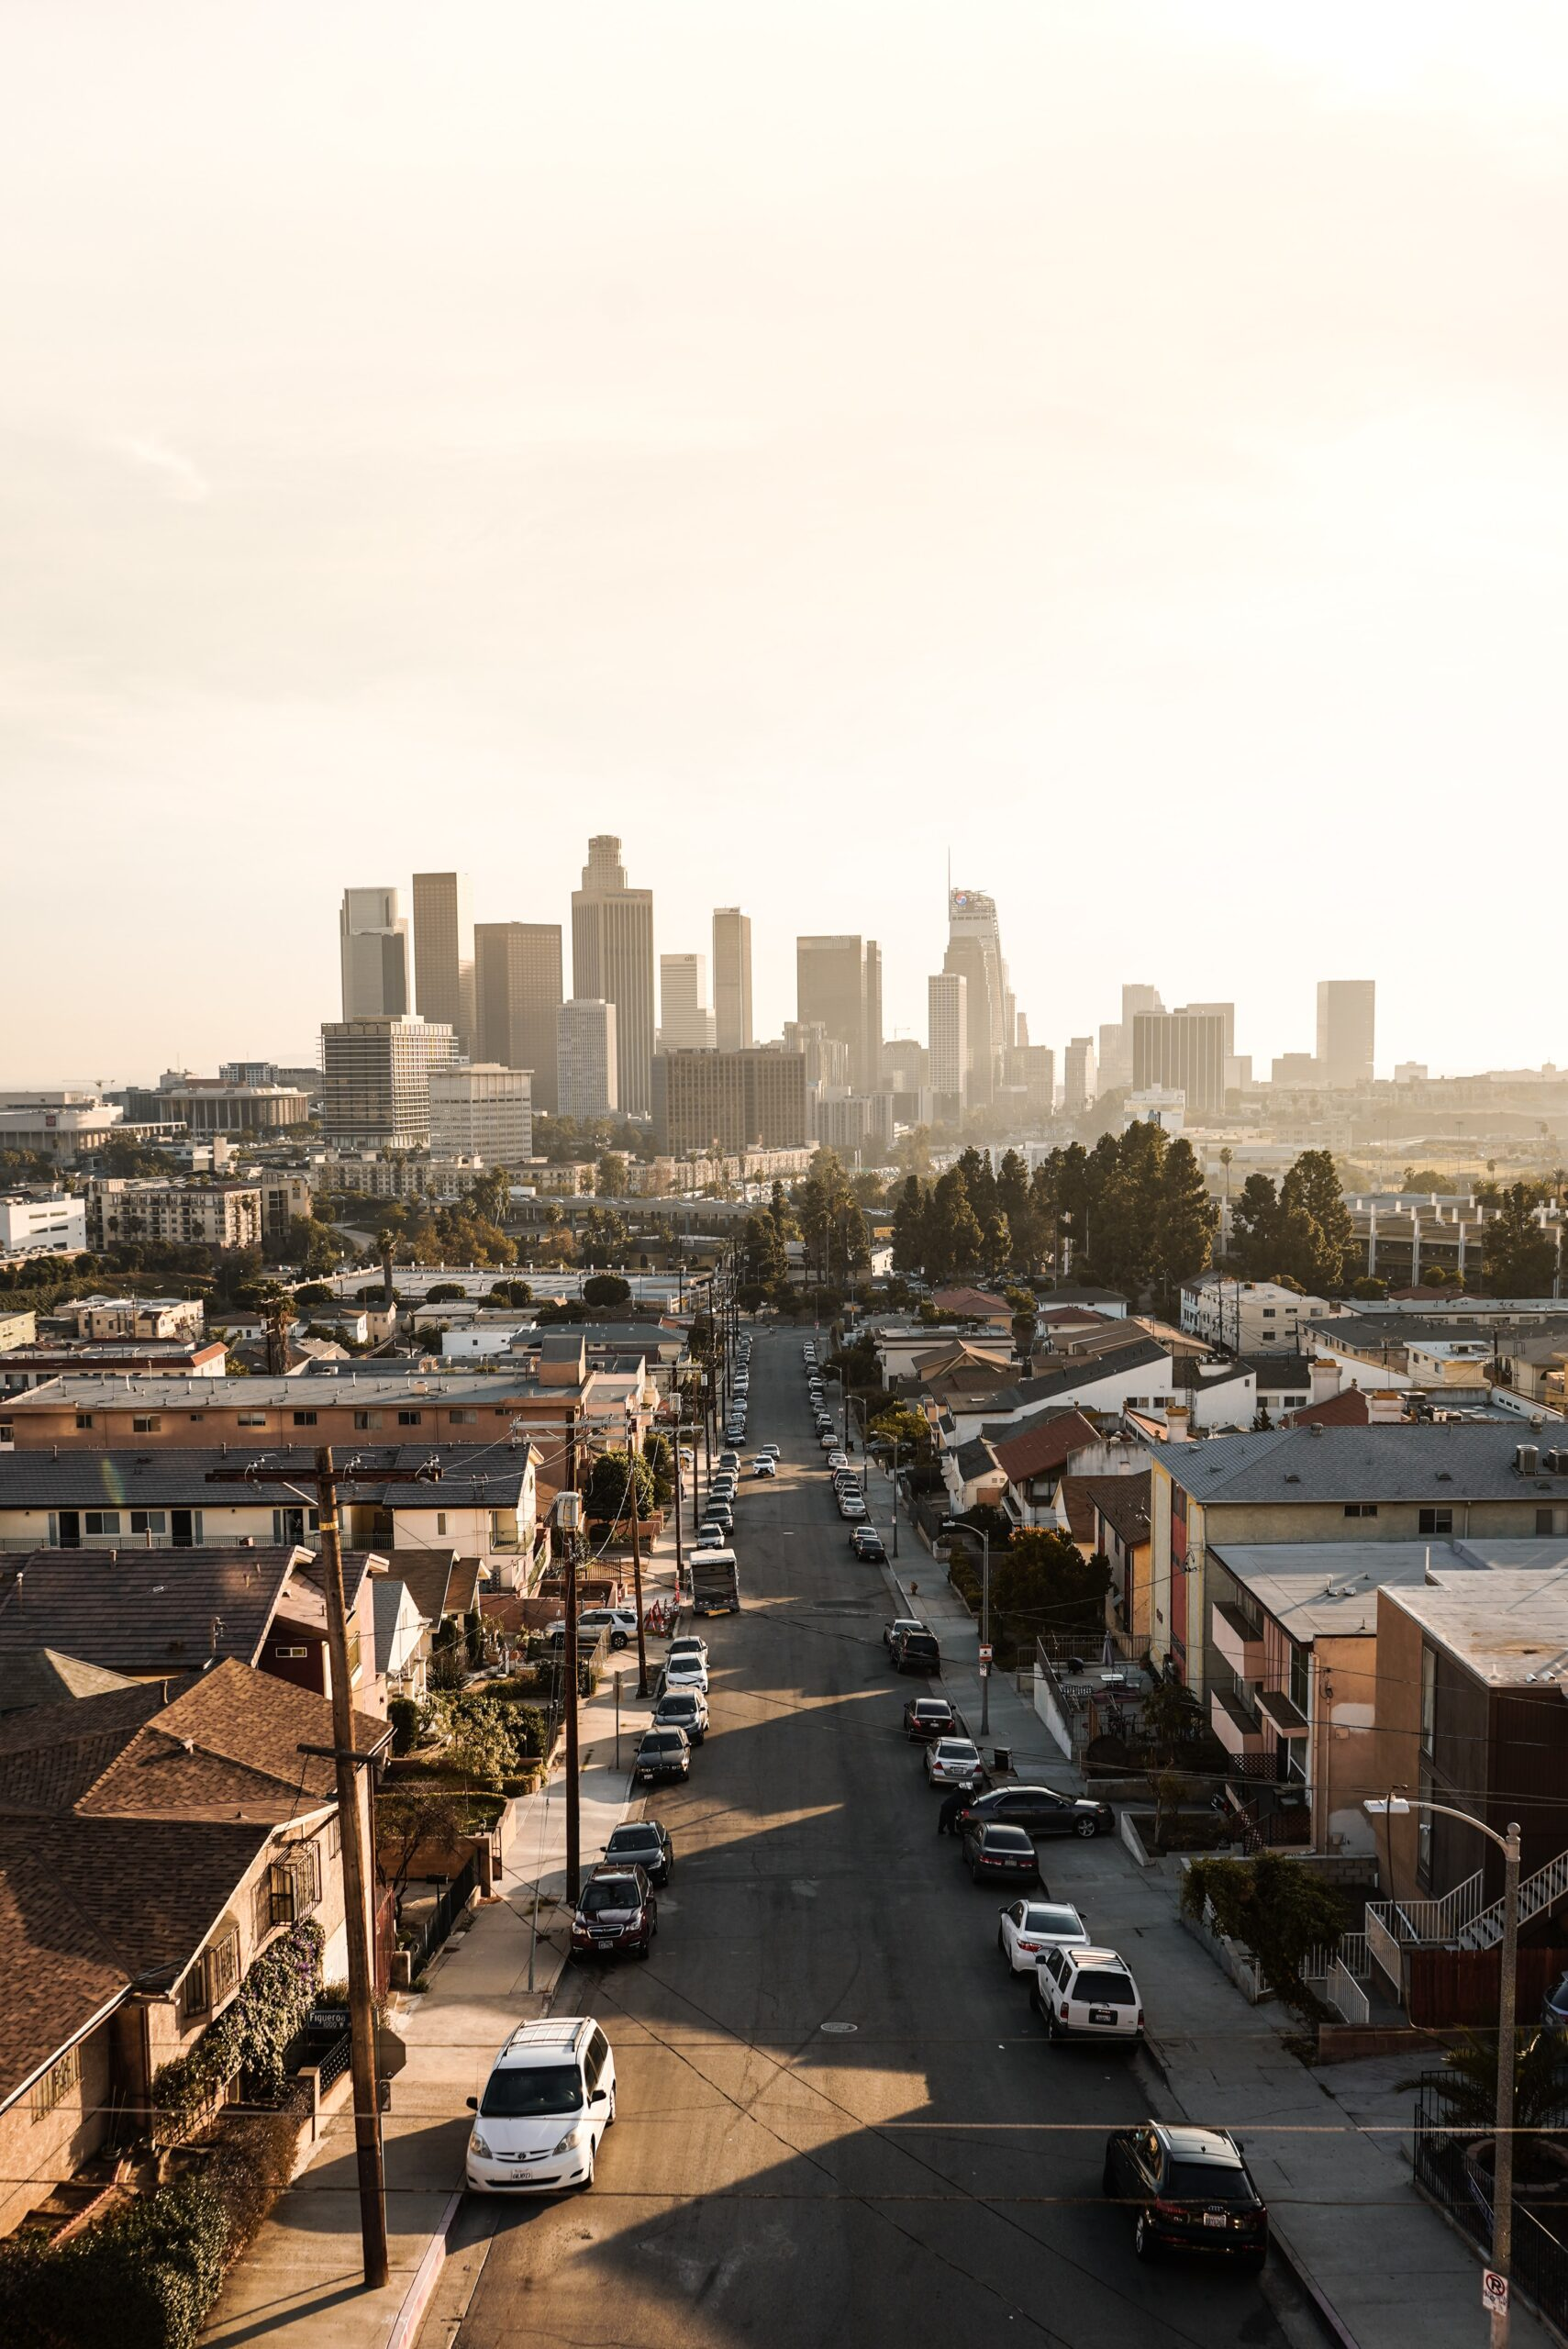 Los Angeles, Los angeles, États-Unis Published on November 20, 2018 ILCE-7M3 Free to use under the Unsplash License Lost in Los Angeles